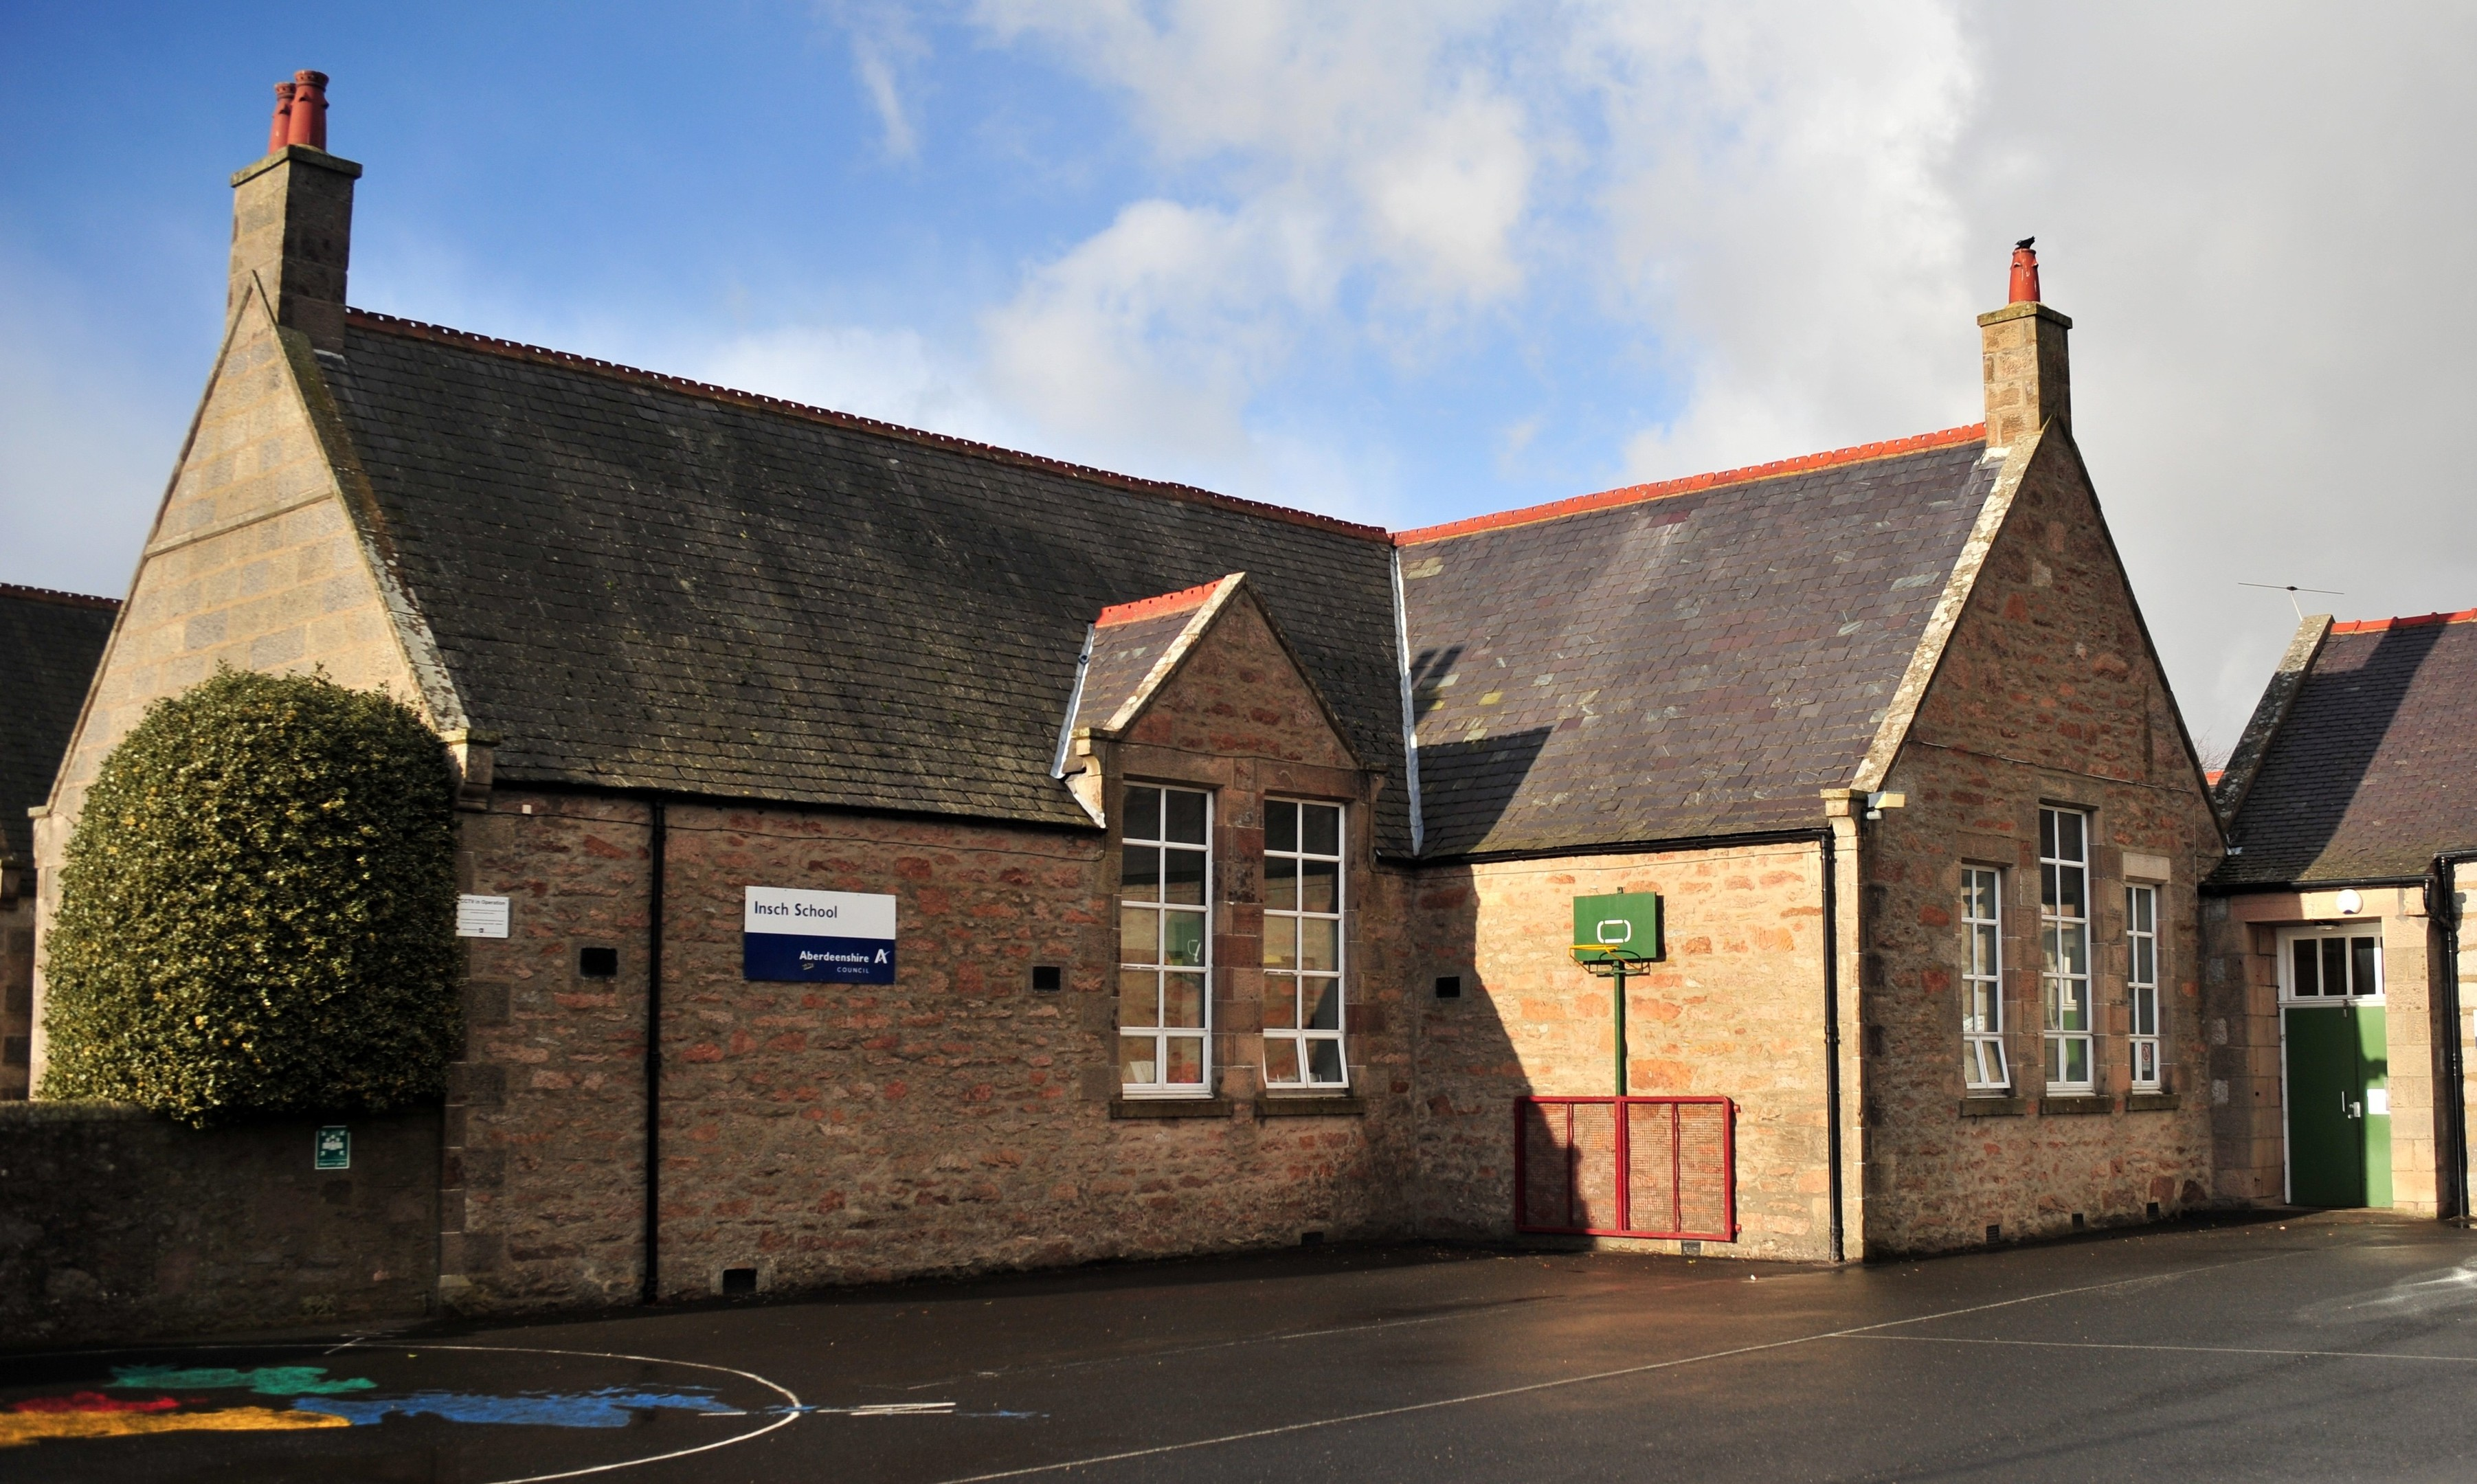 Insch Primary School is set to receive an extension as part of the plans.